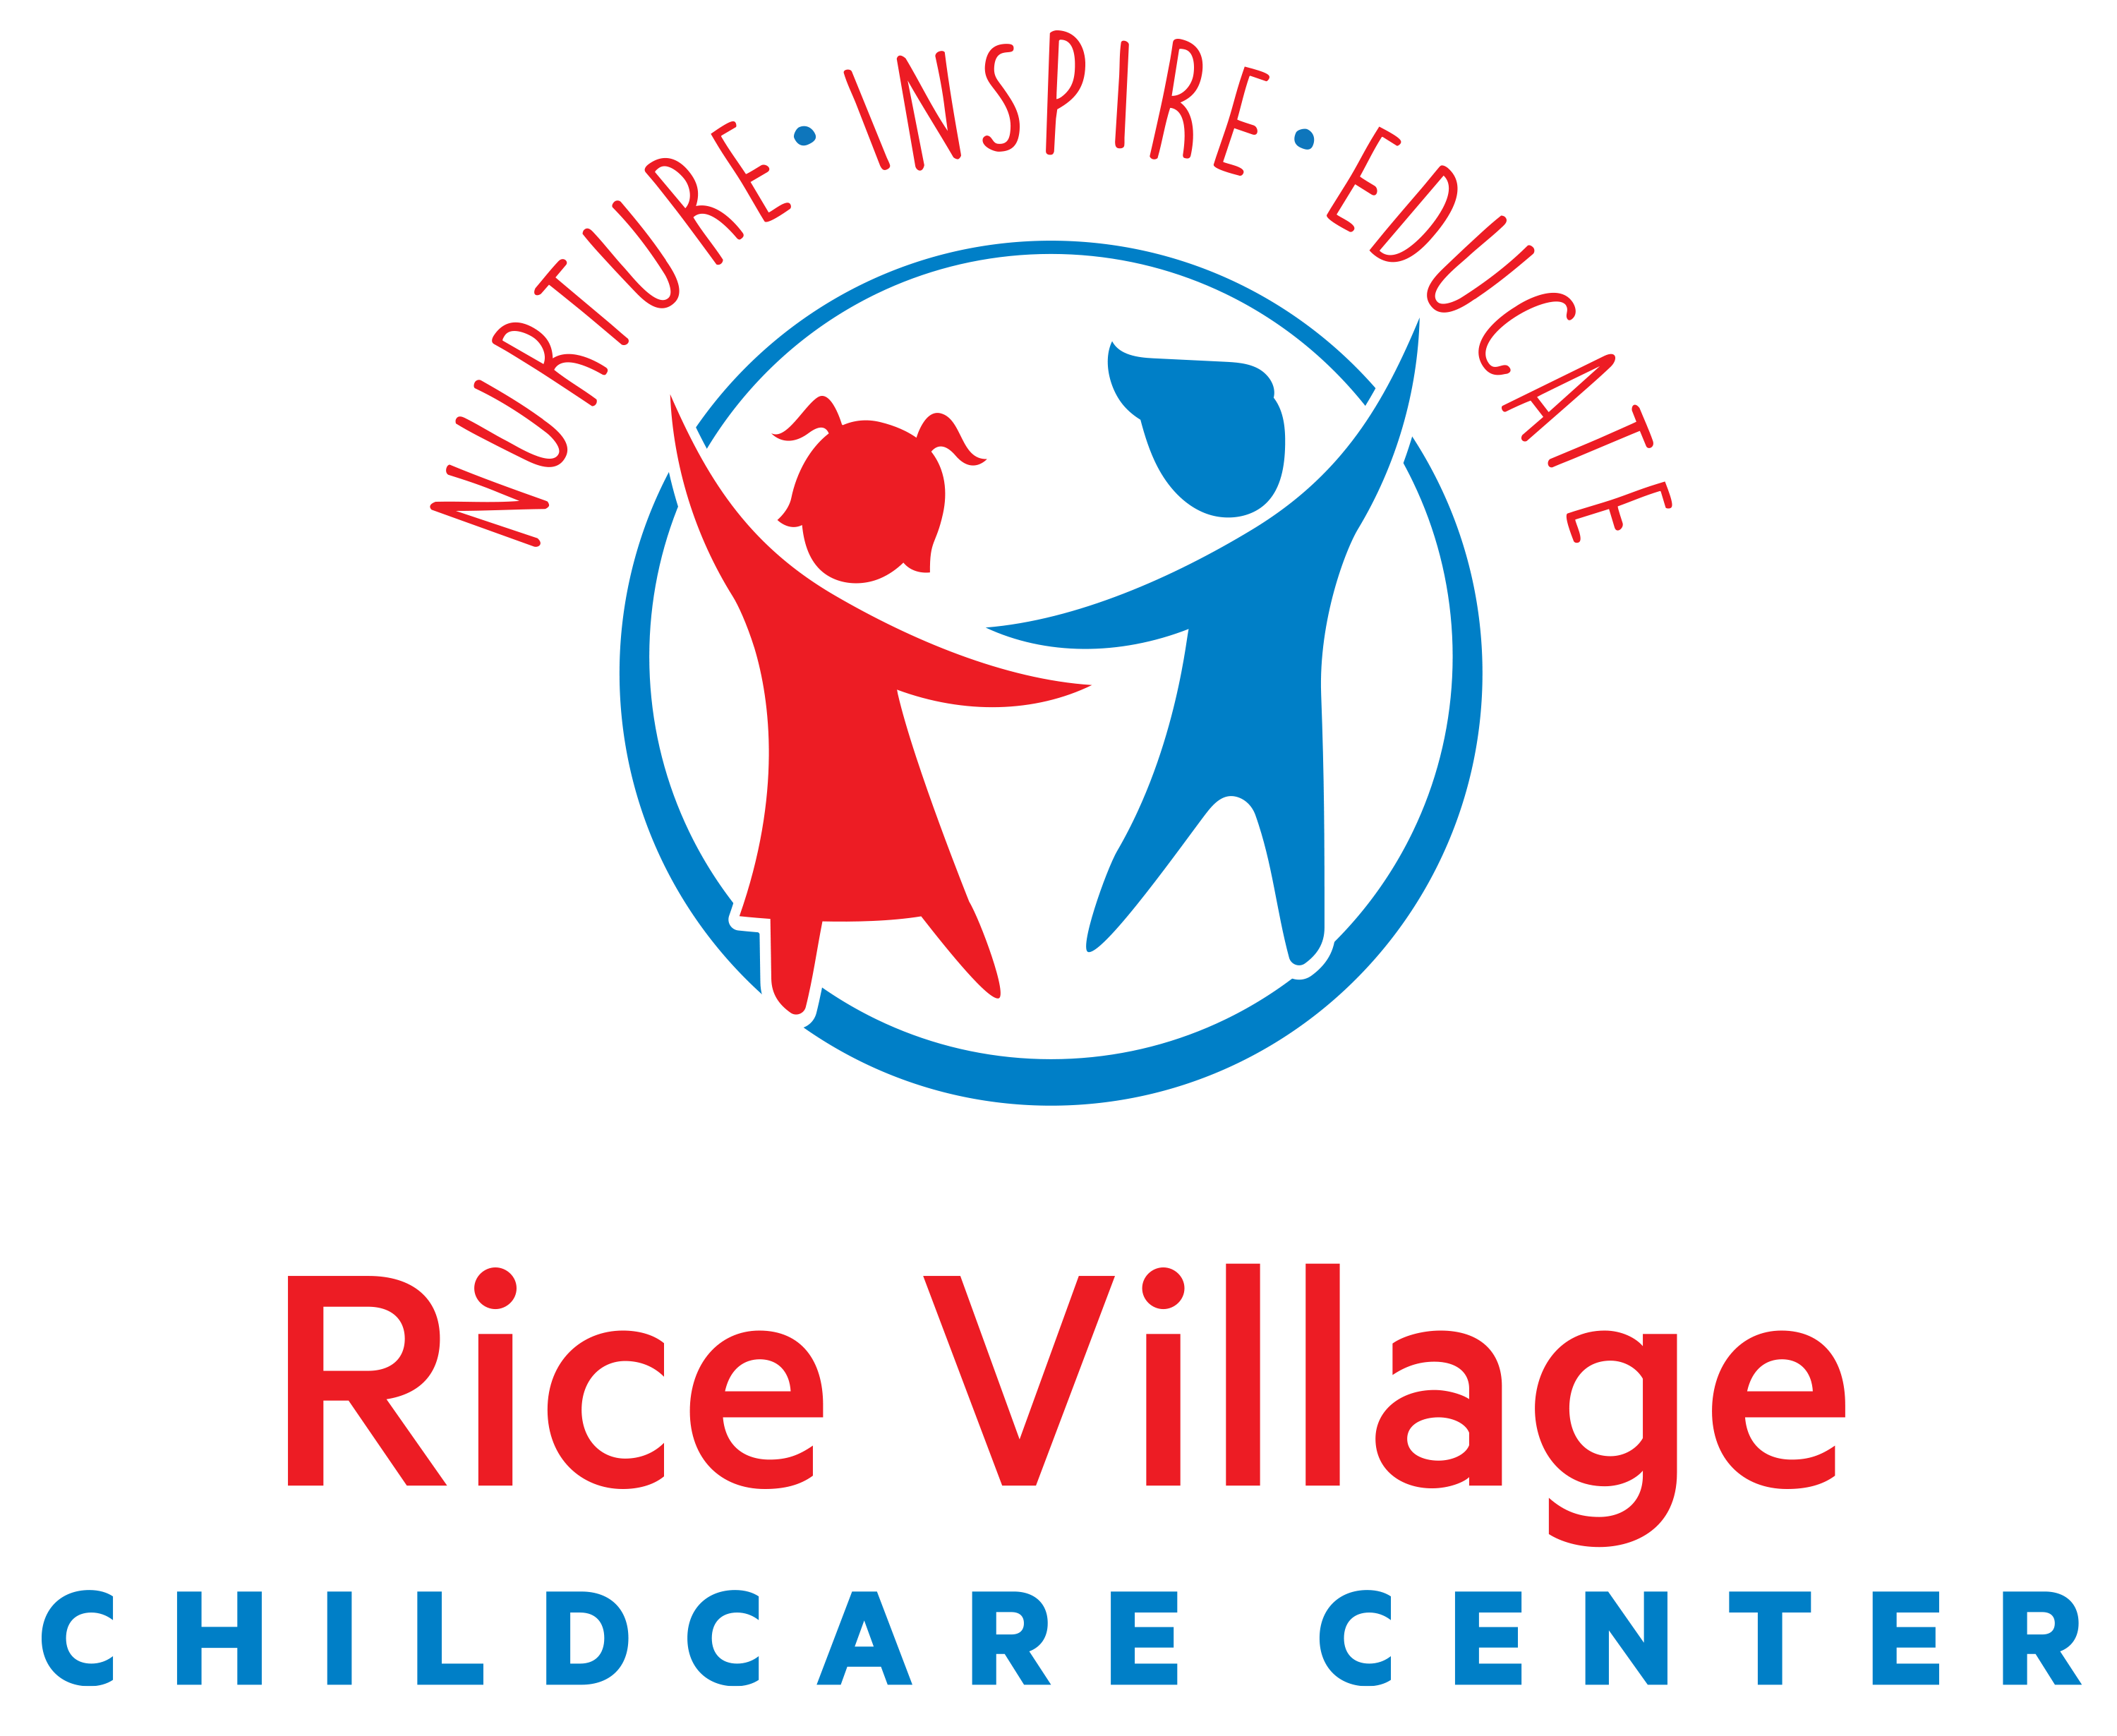 Rice Village Childcare Center